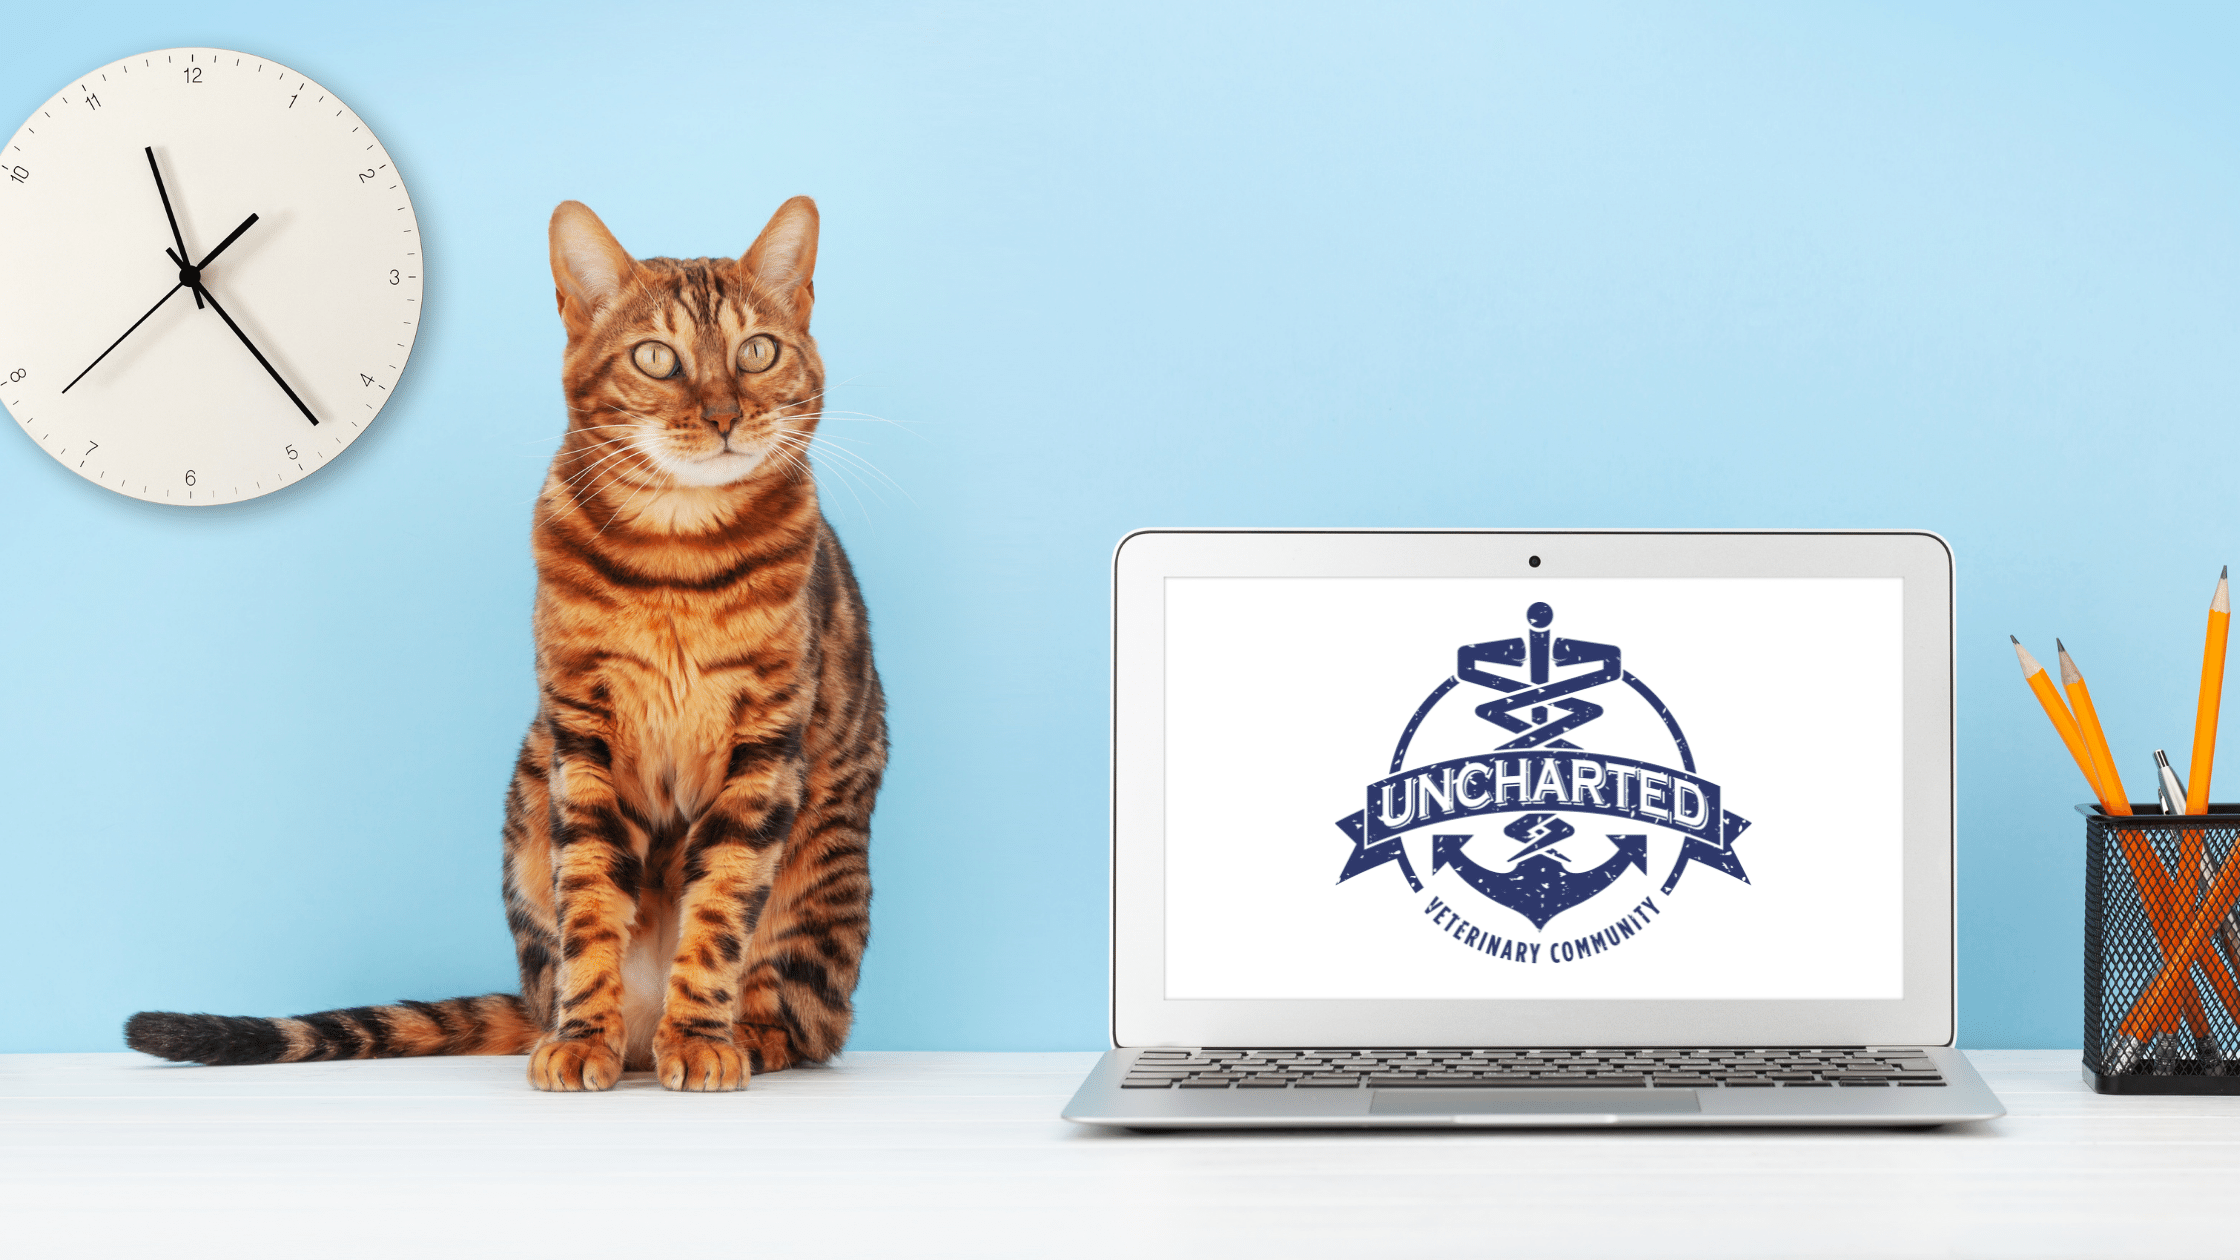 Photo of a cat next to a computer with the Uncharted Community logo